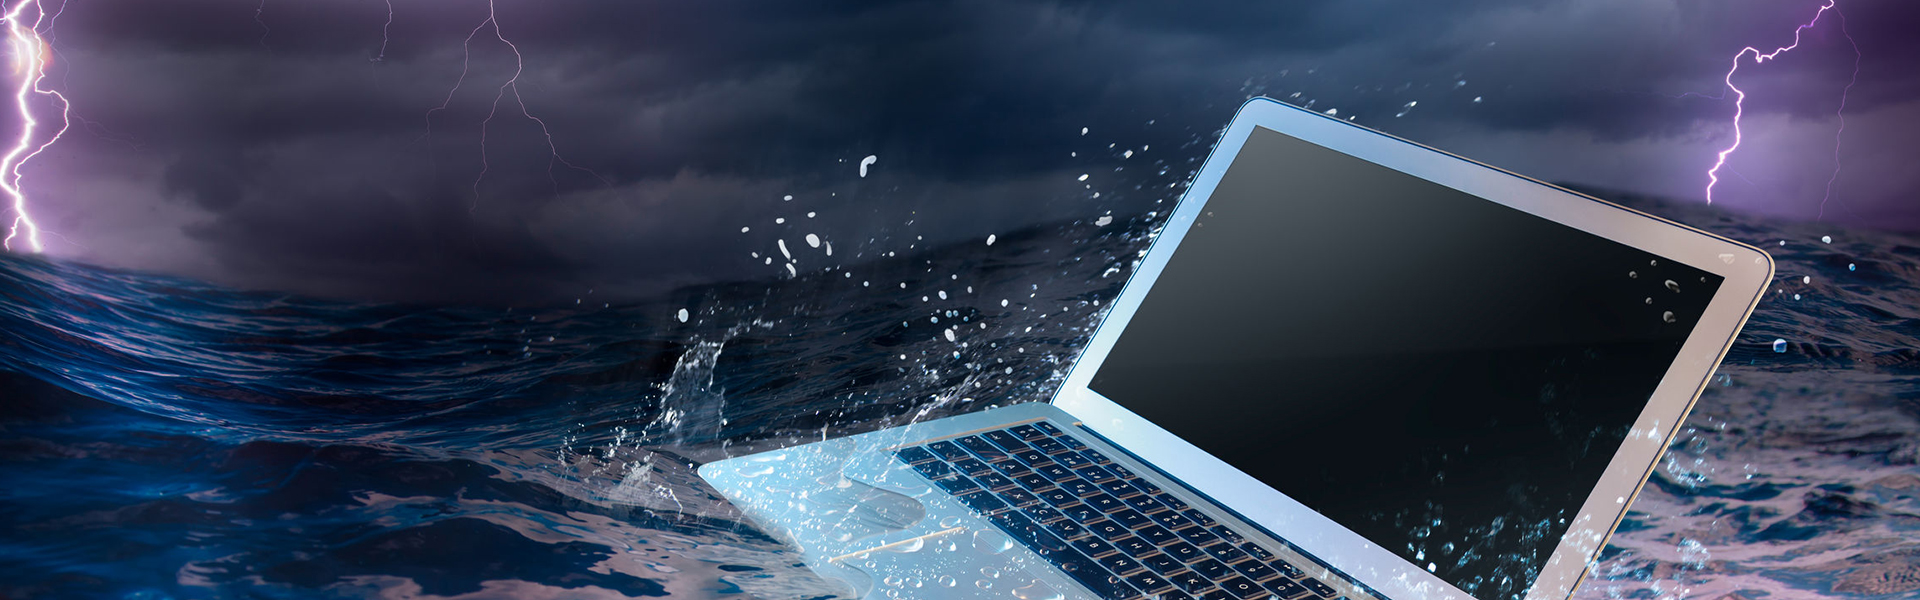 Disaster Recovery and Backup Solutions